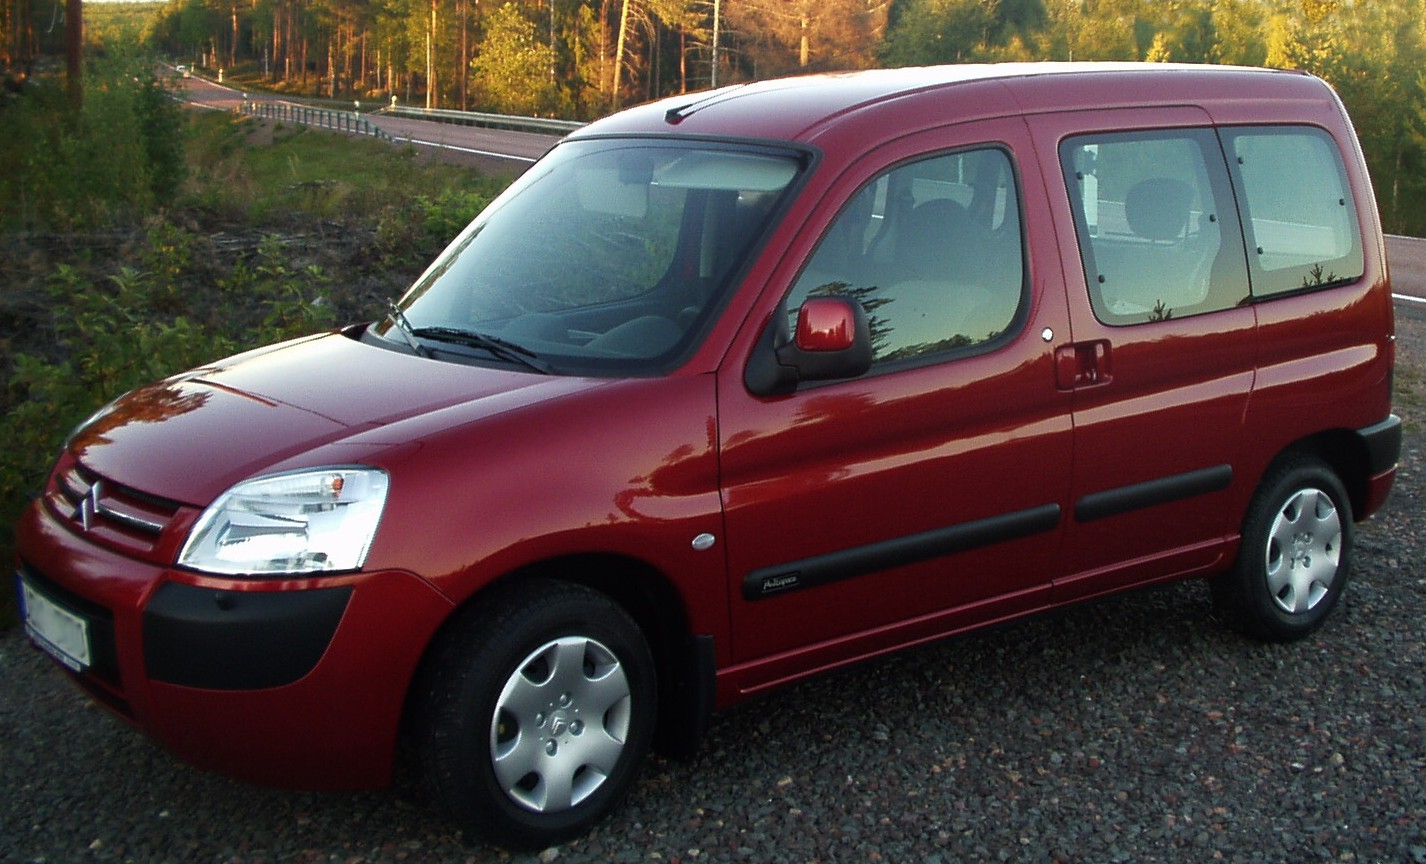 File:Citroën Berlingo.jpg